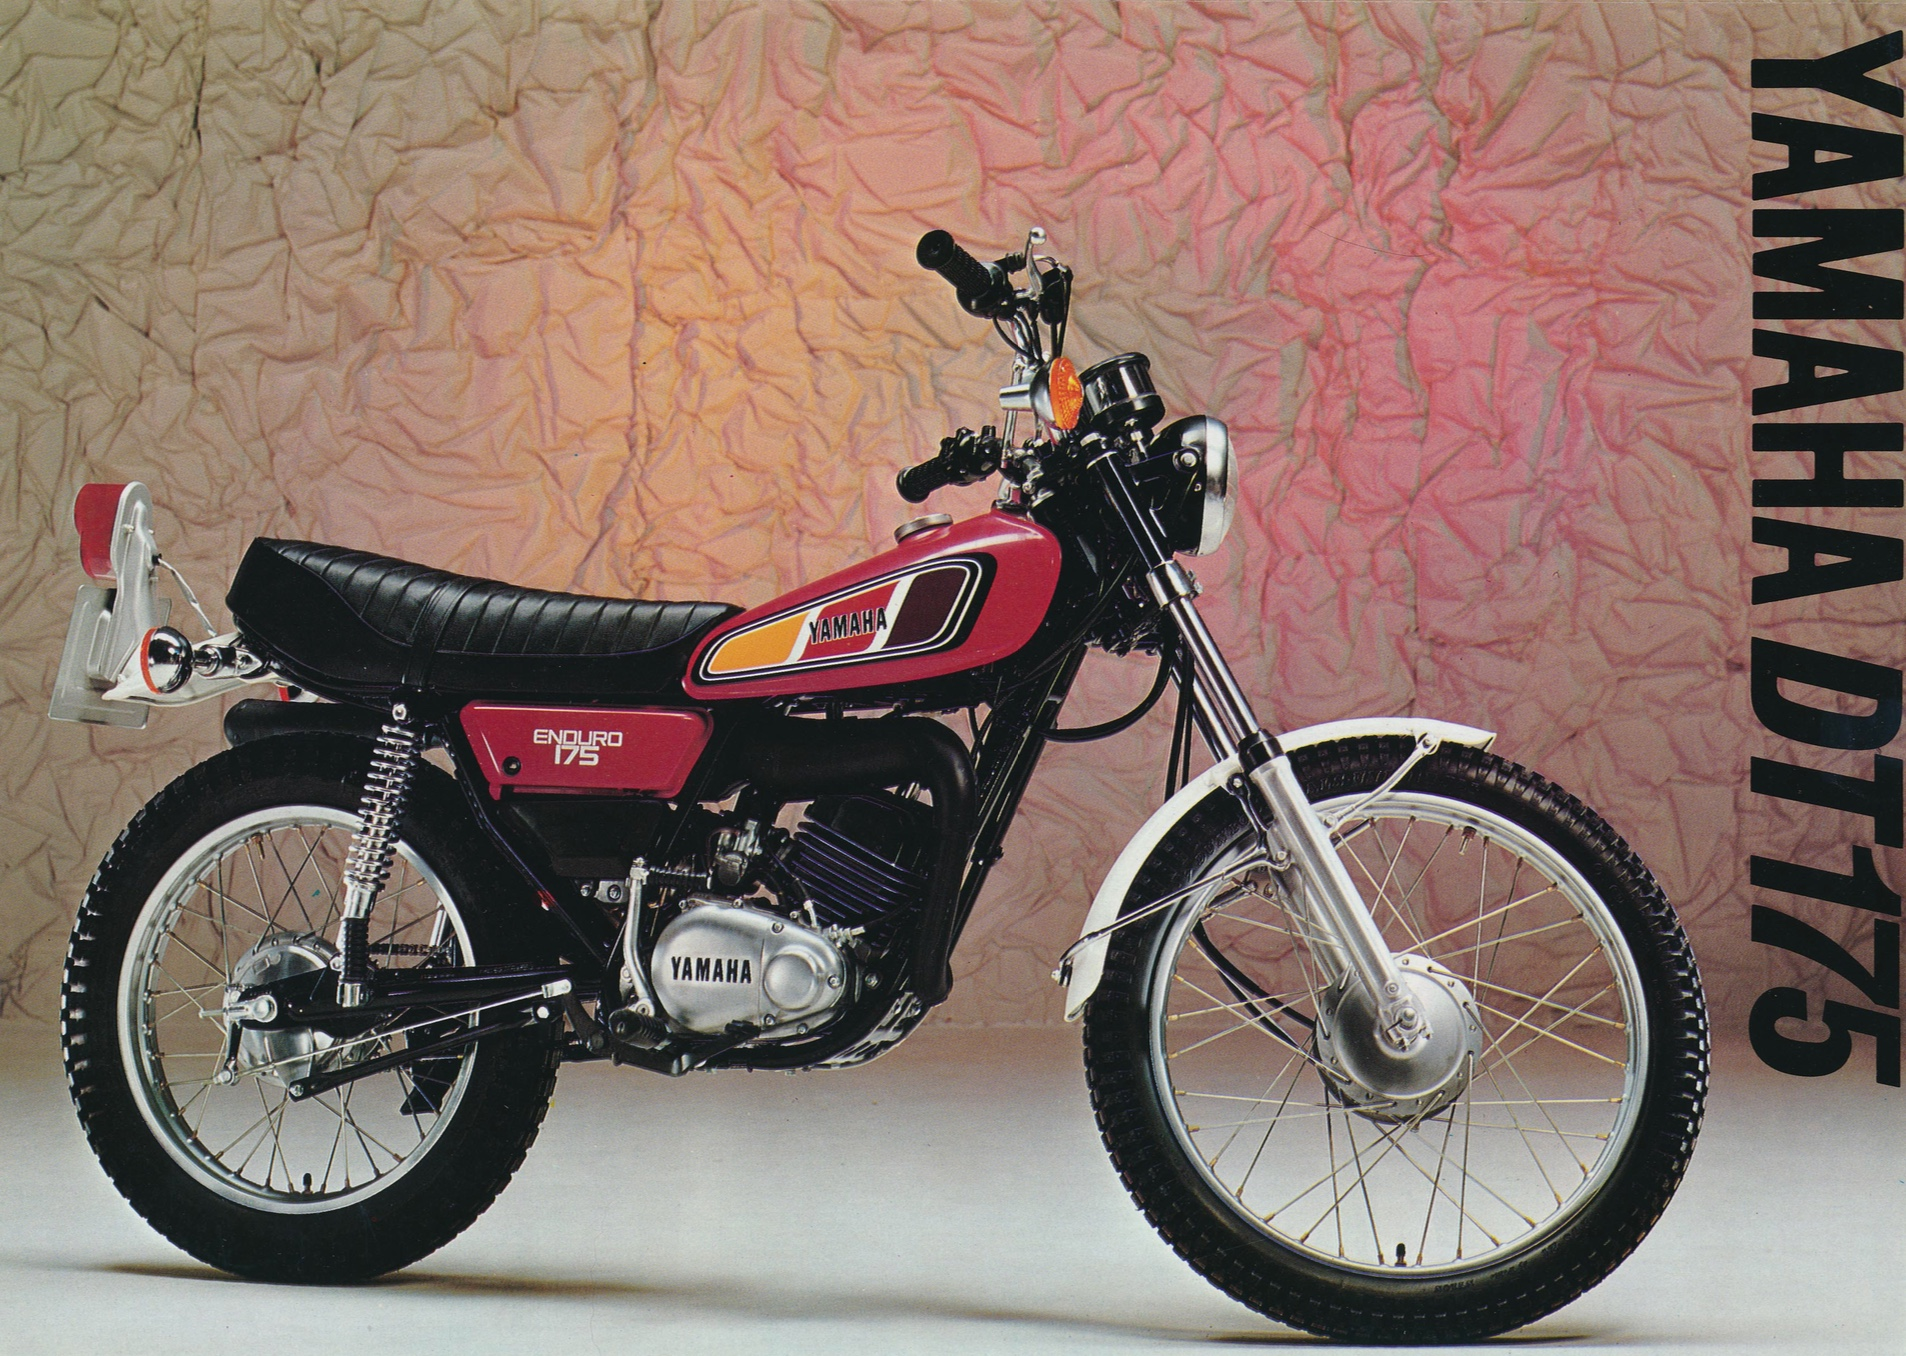 A red Yamaha DT175 trails style motorcycle with the wording Yamaha DT175 written vertically on the right from the front cover of a sales brochure